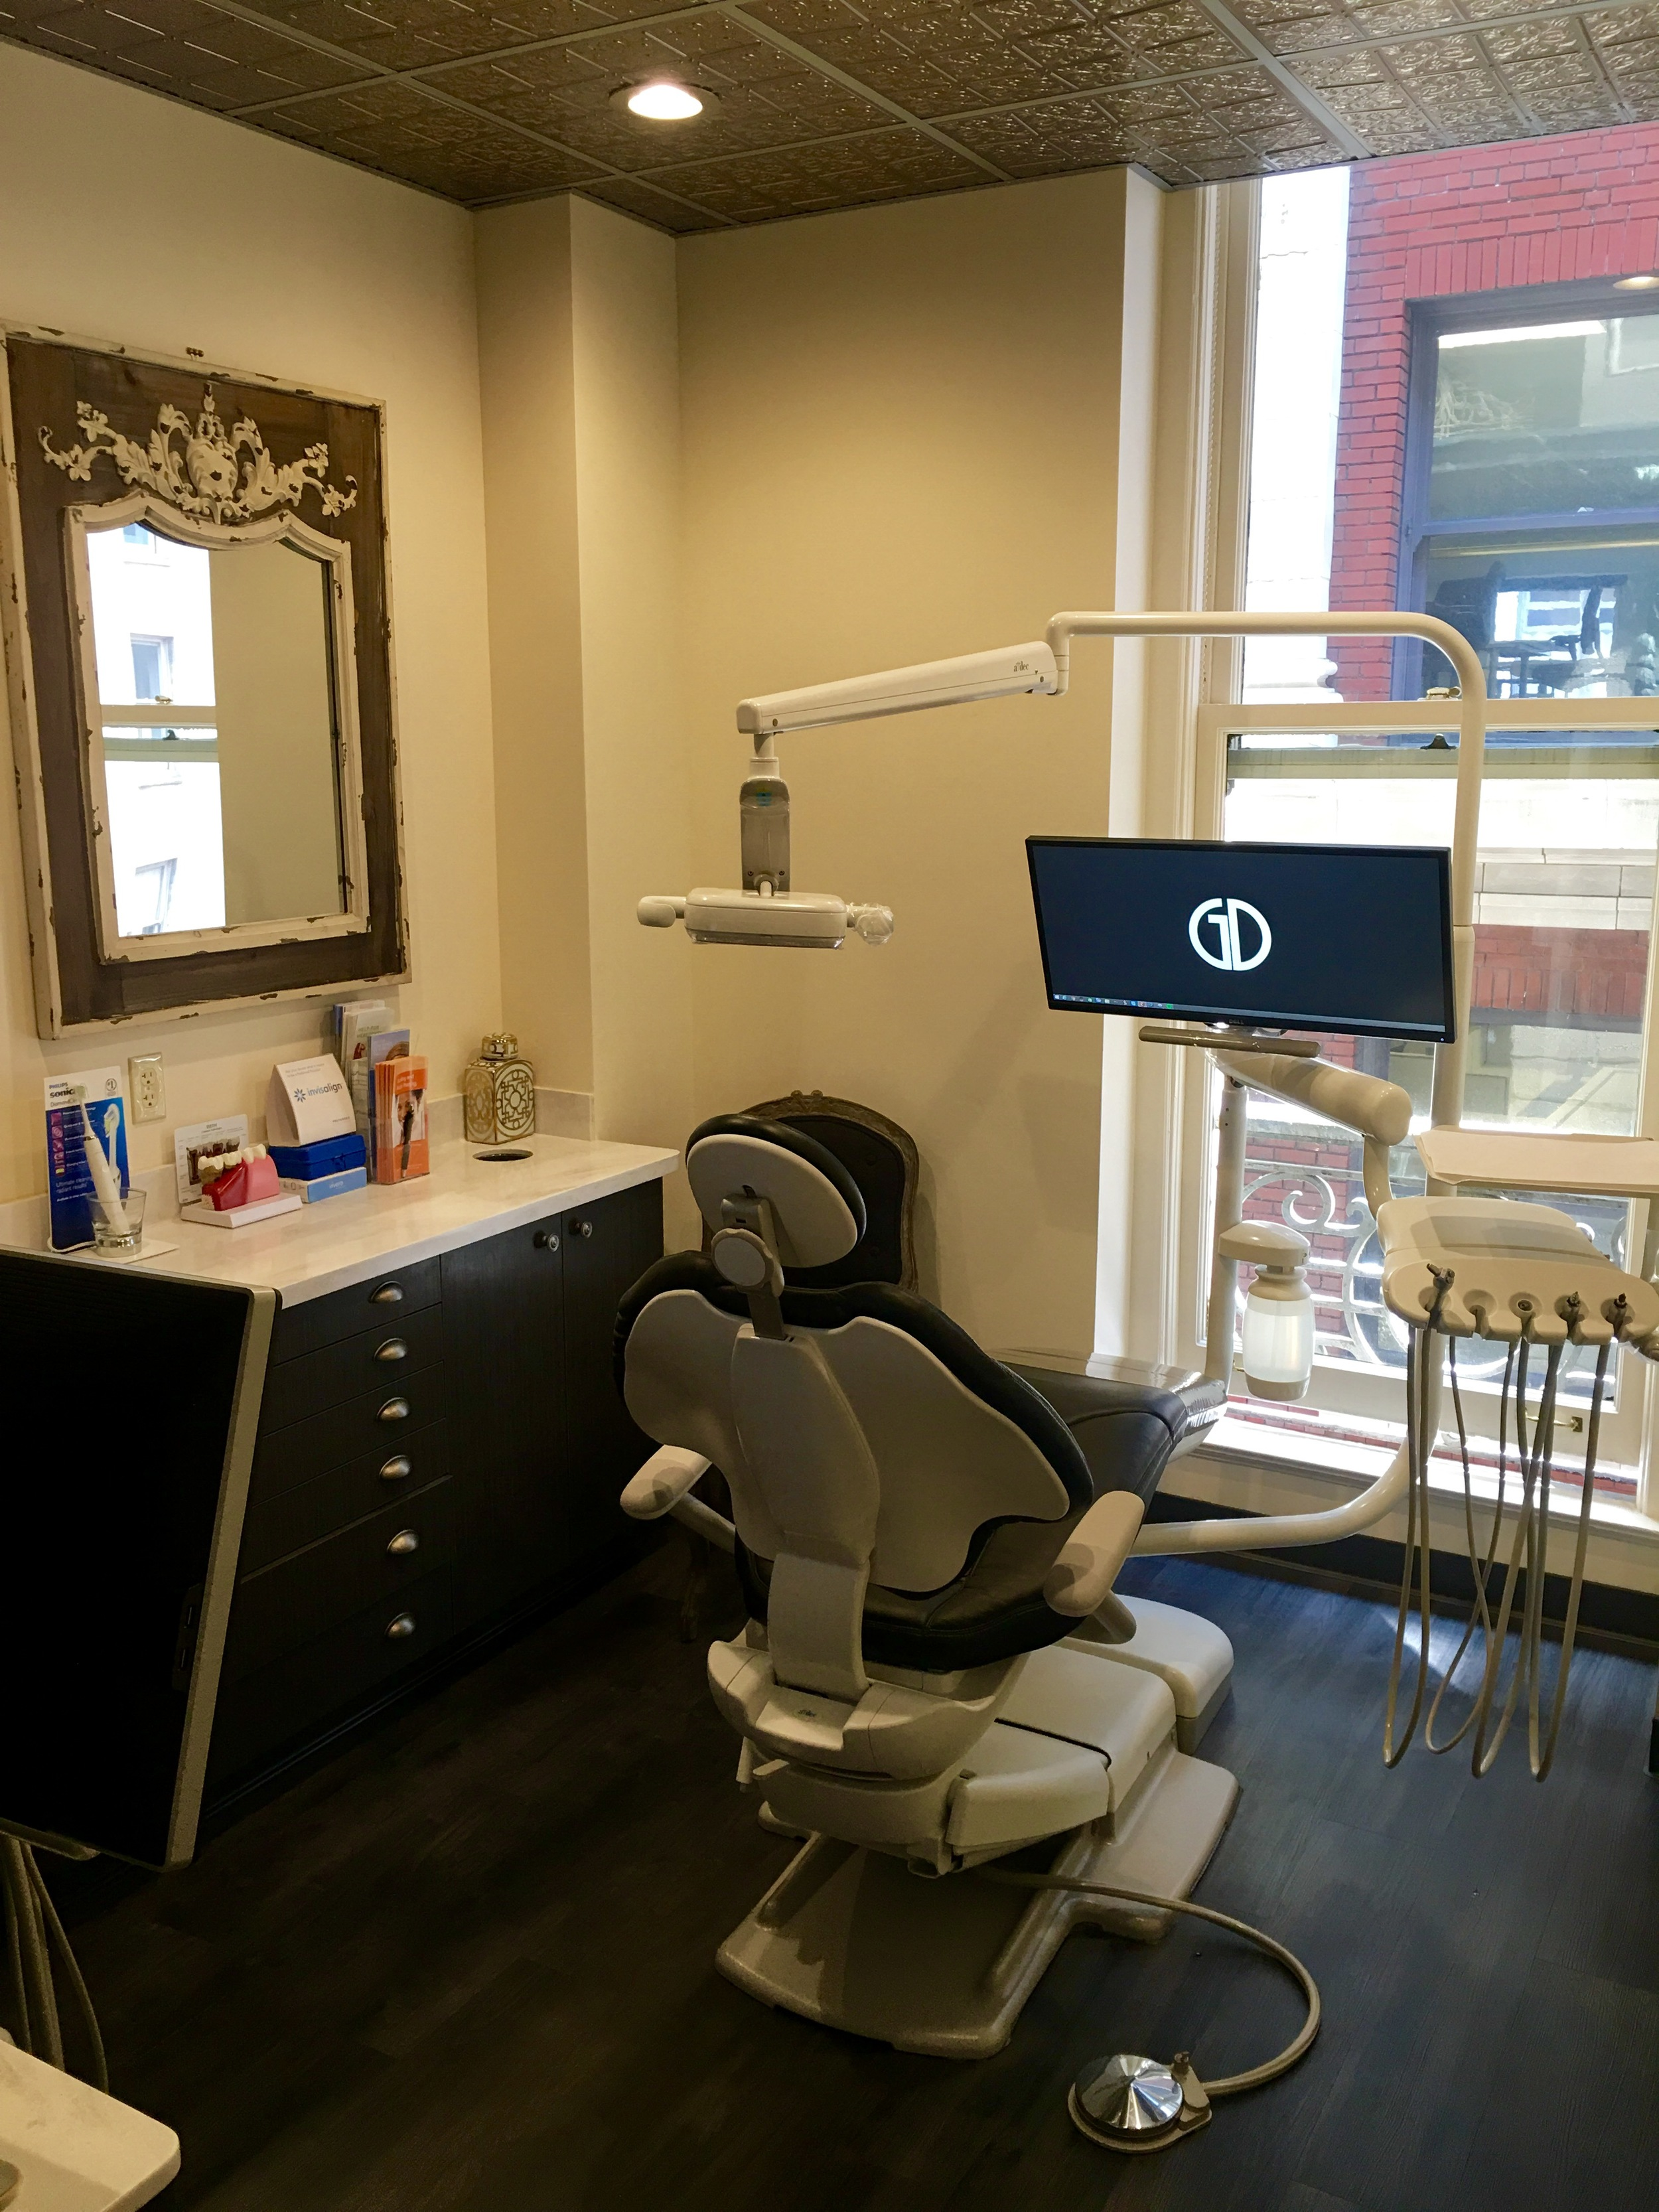 San Francisco dental office op with chair and monitor